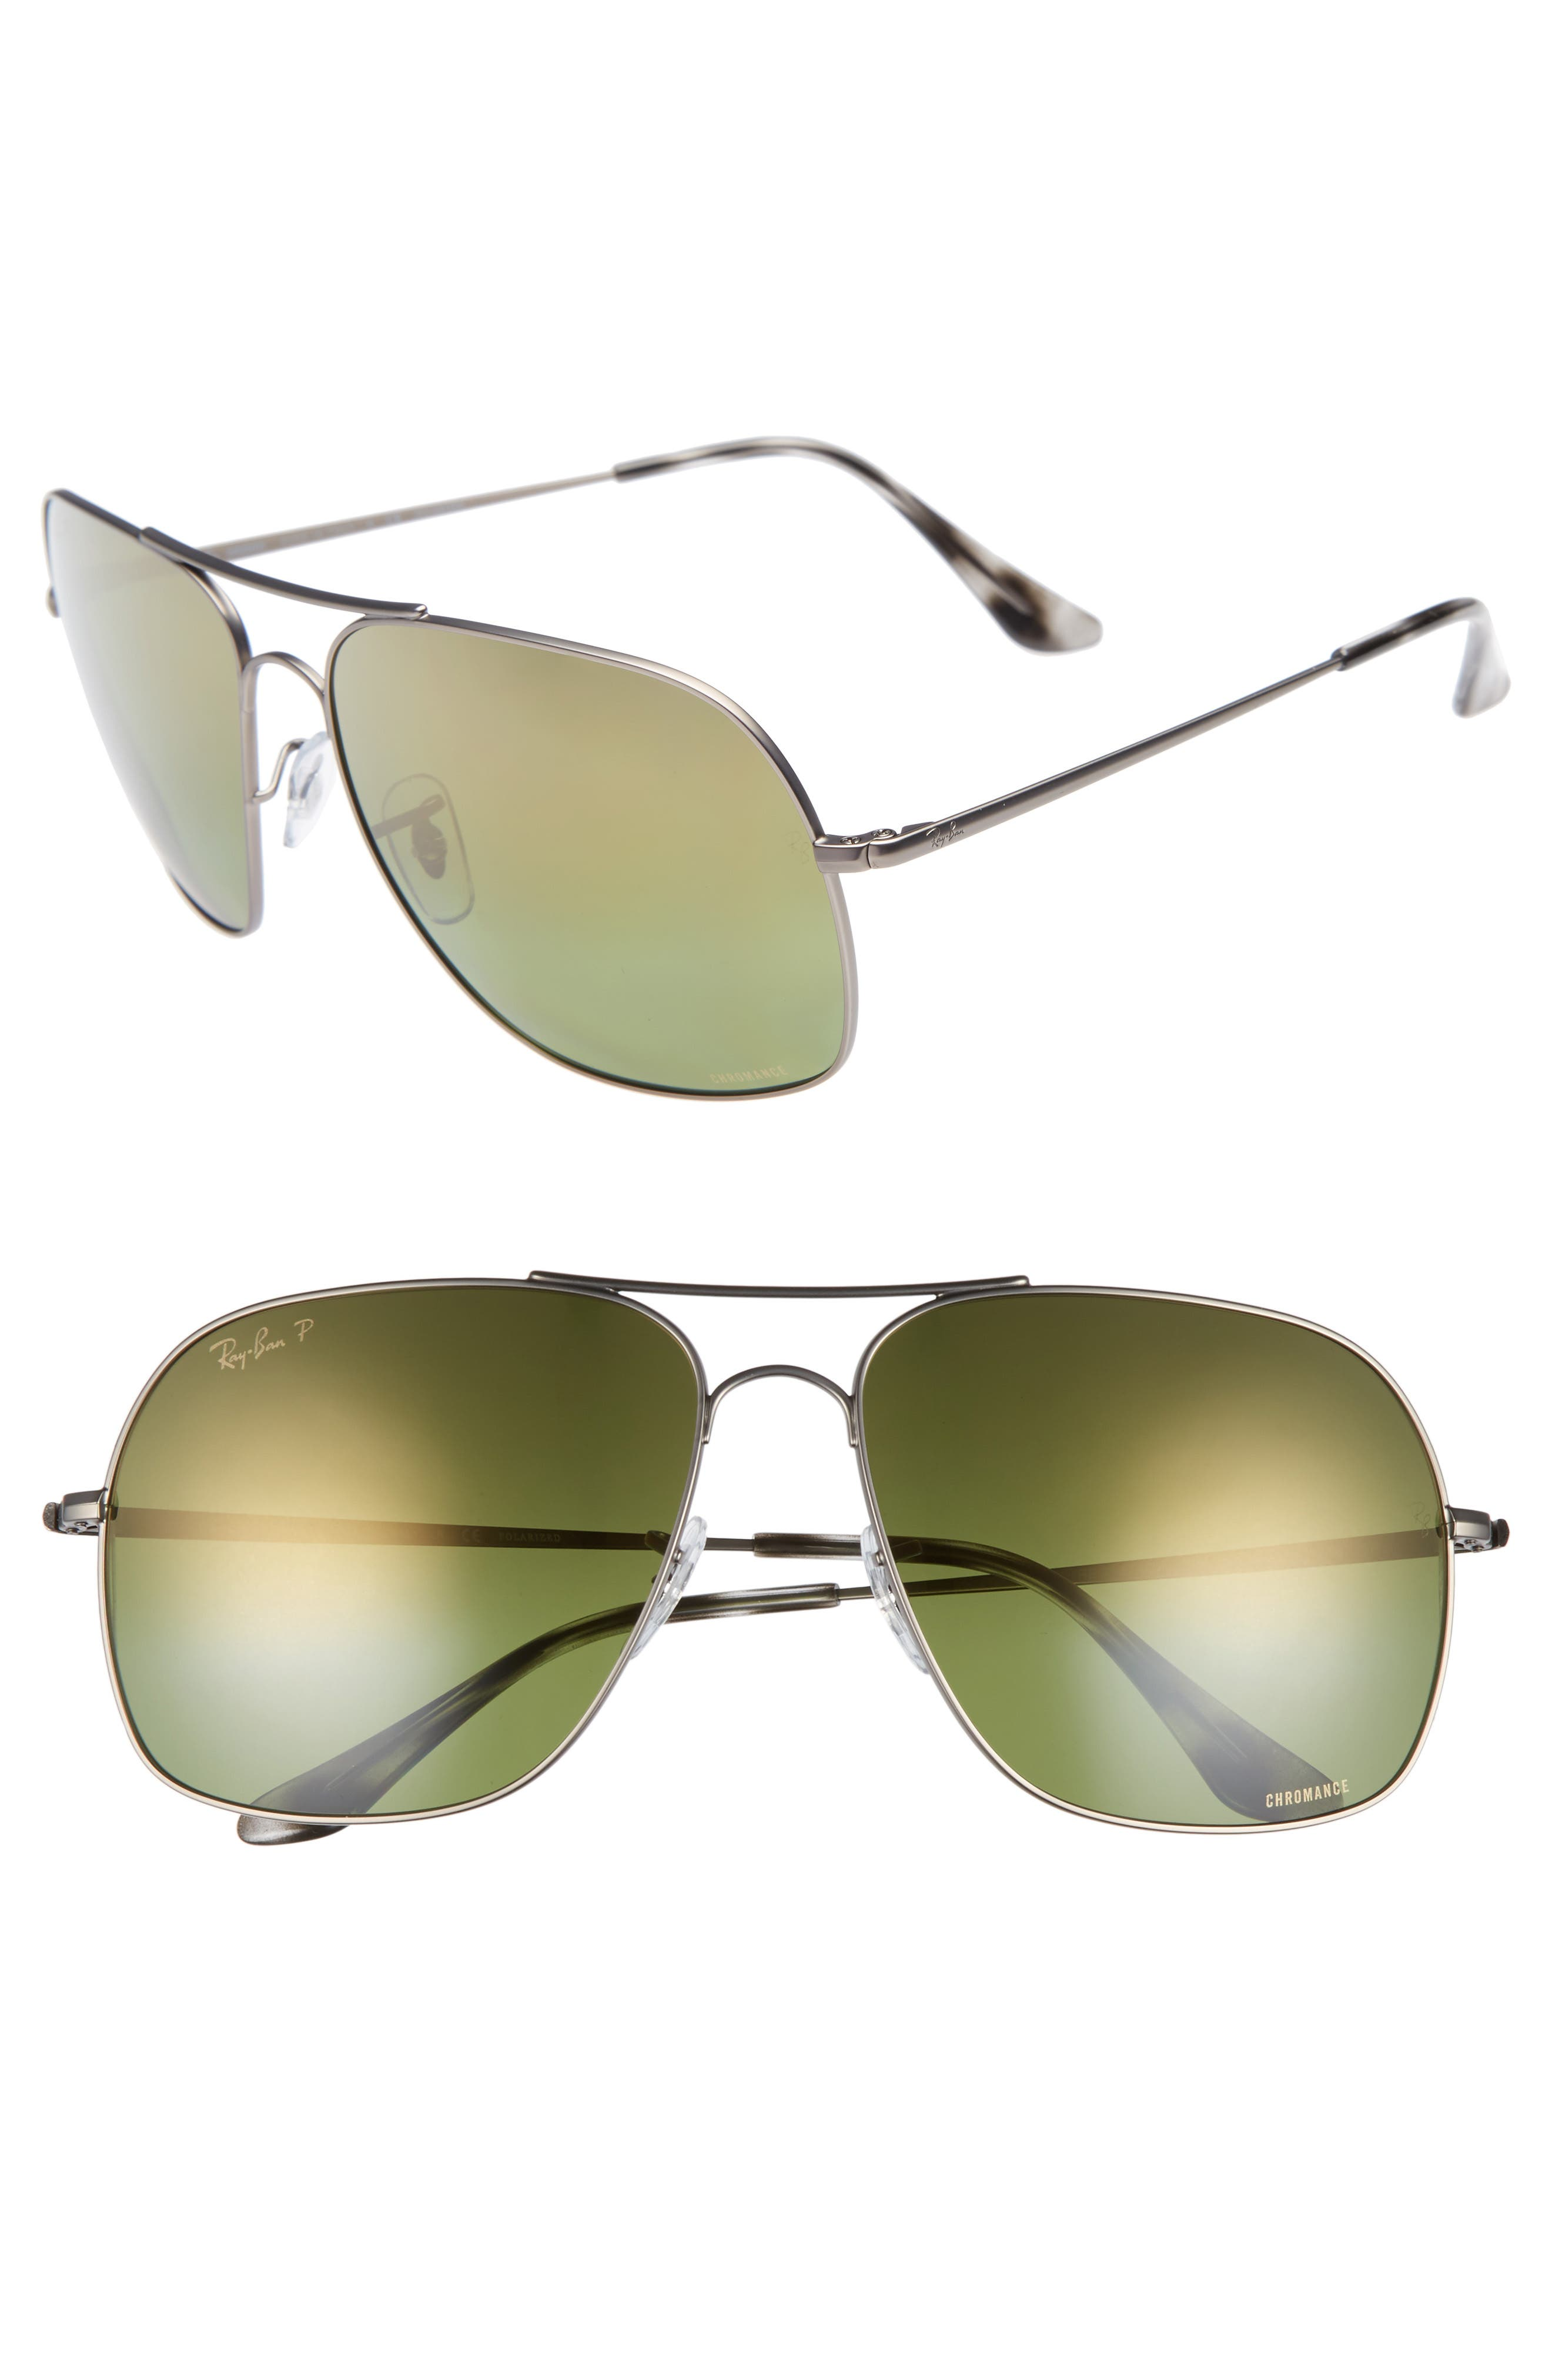 Chromance 61mm Double Bridge Aviator Sunglasses,                         Main,                         color, GUNMETAL/ GREEN